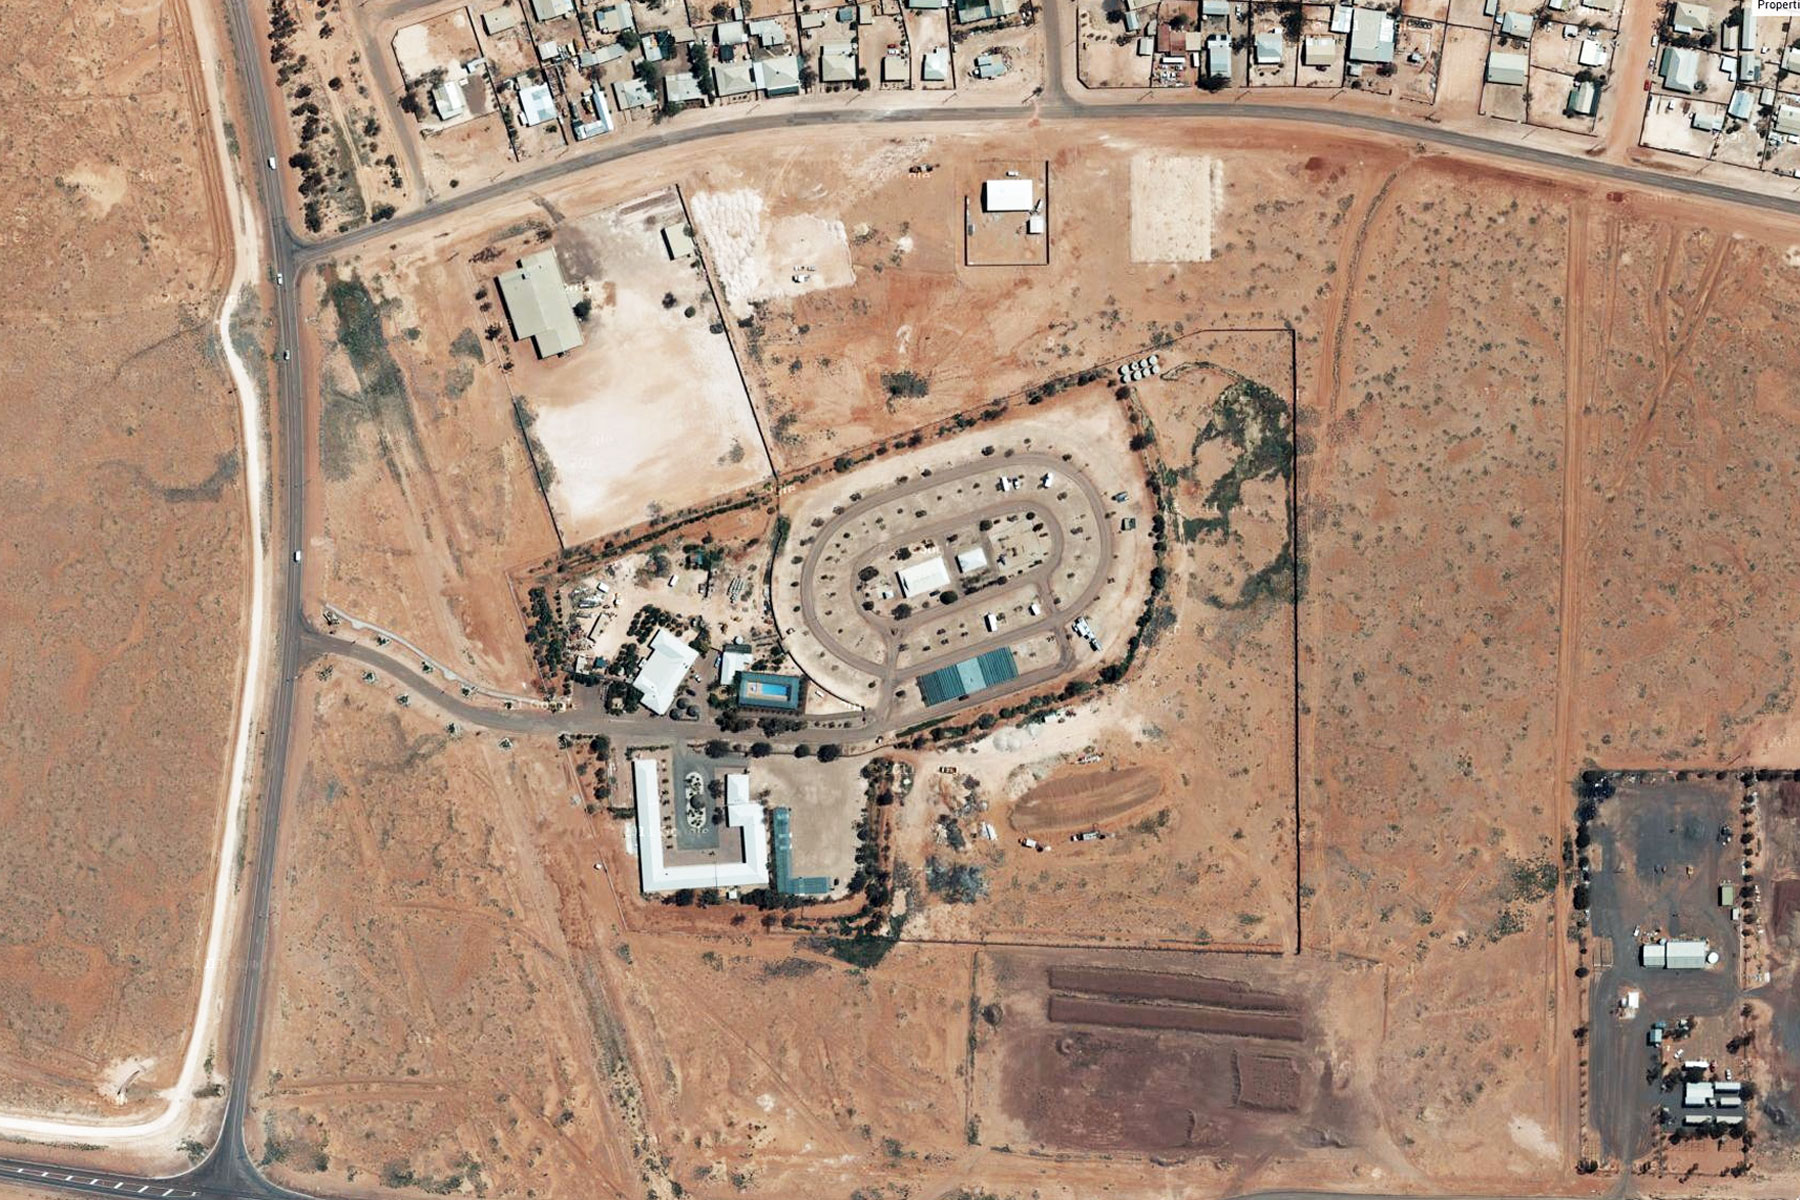 (Image data from Nearmaps)